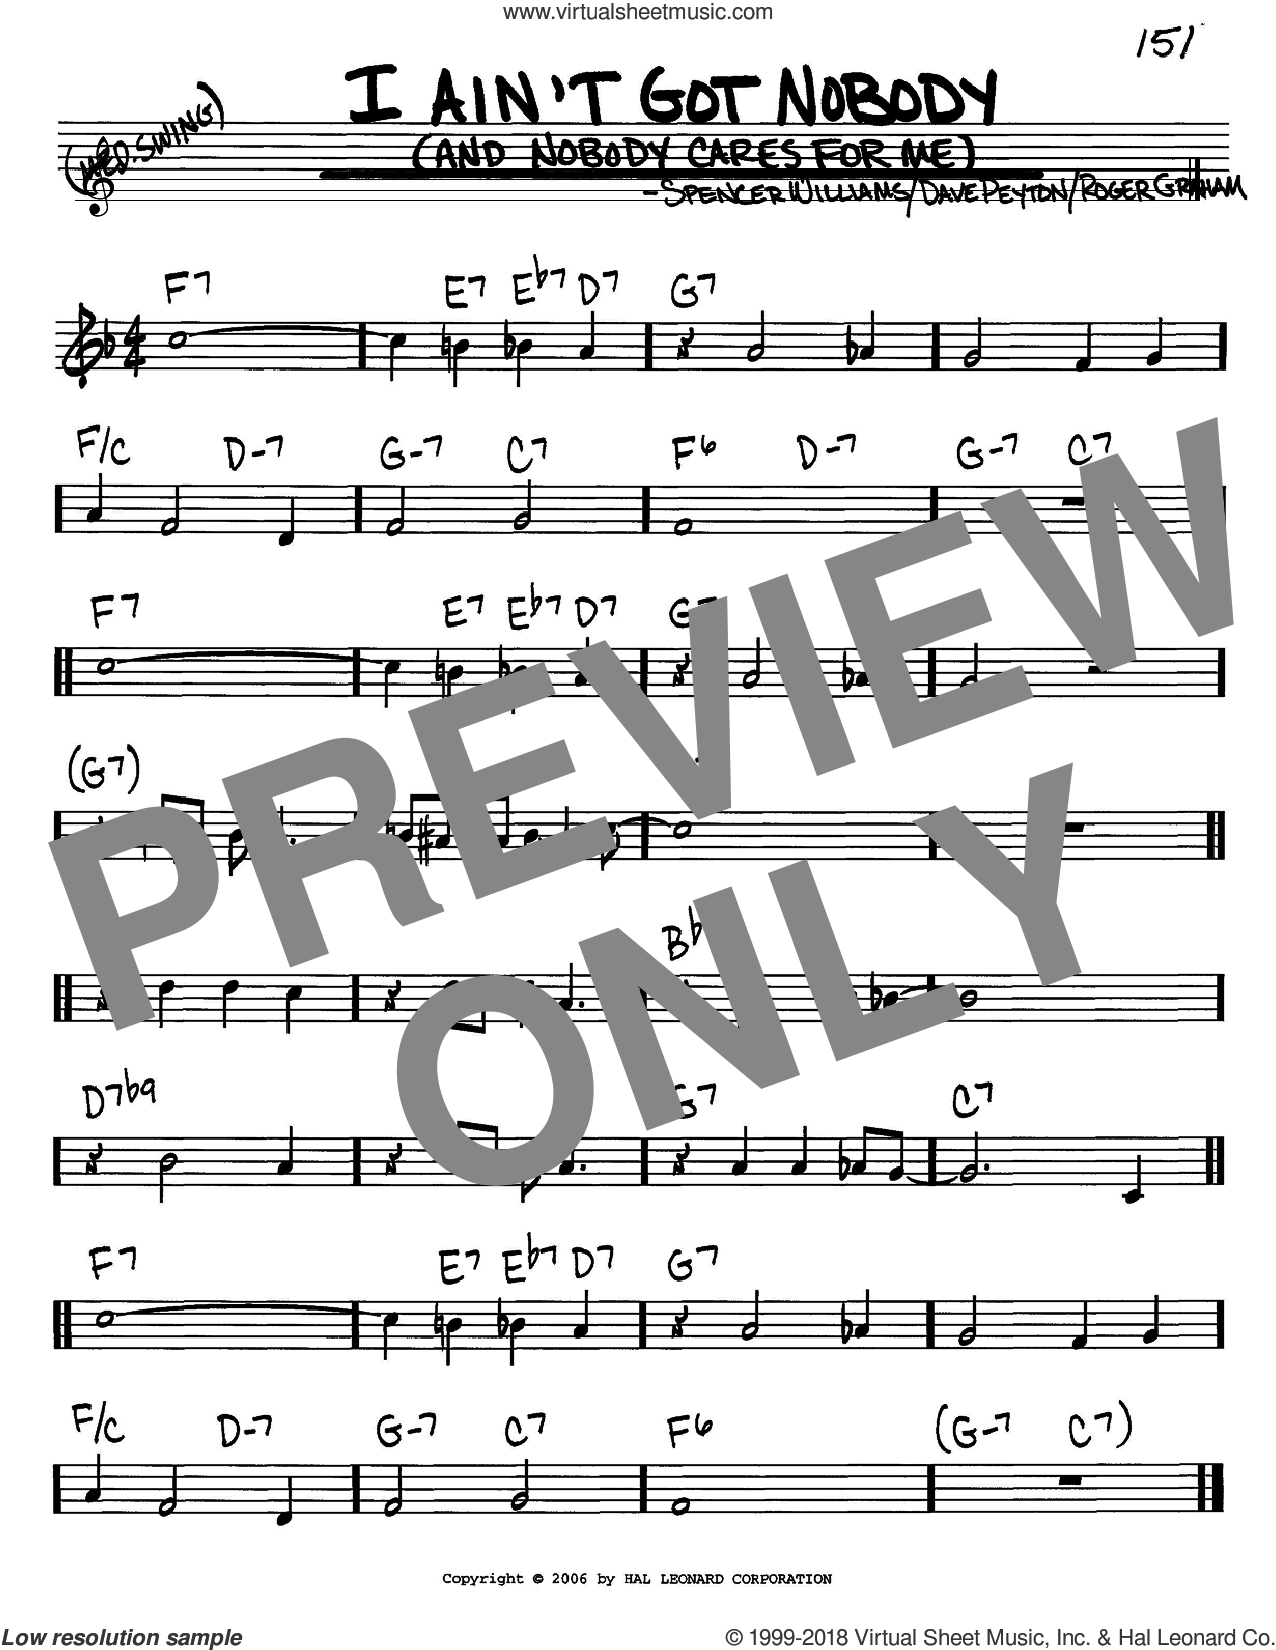 I Ain't Got Nobody (And Nobody Cares For Me) sheet music for voice and other instruments (in C) by Bessie Smith, Dave Peyton, Roger Graham and Spencer Williams, intermediate skill level